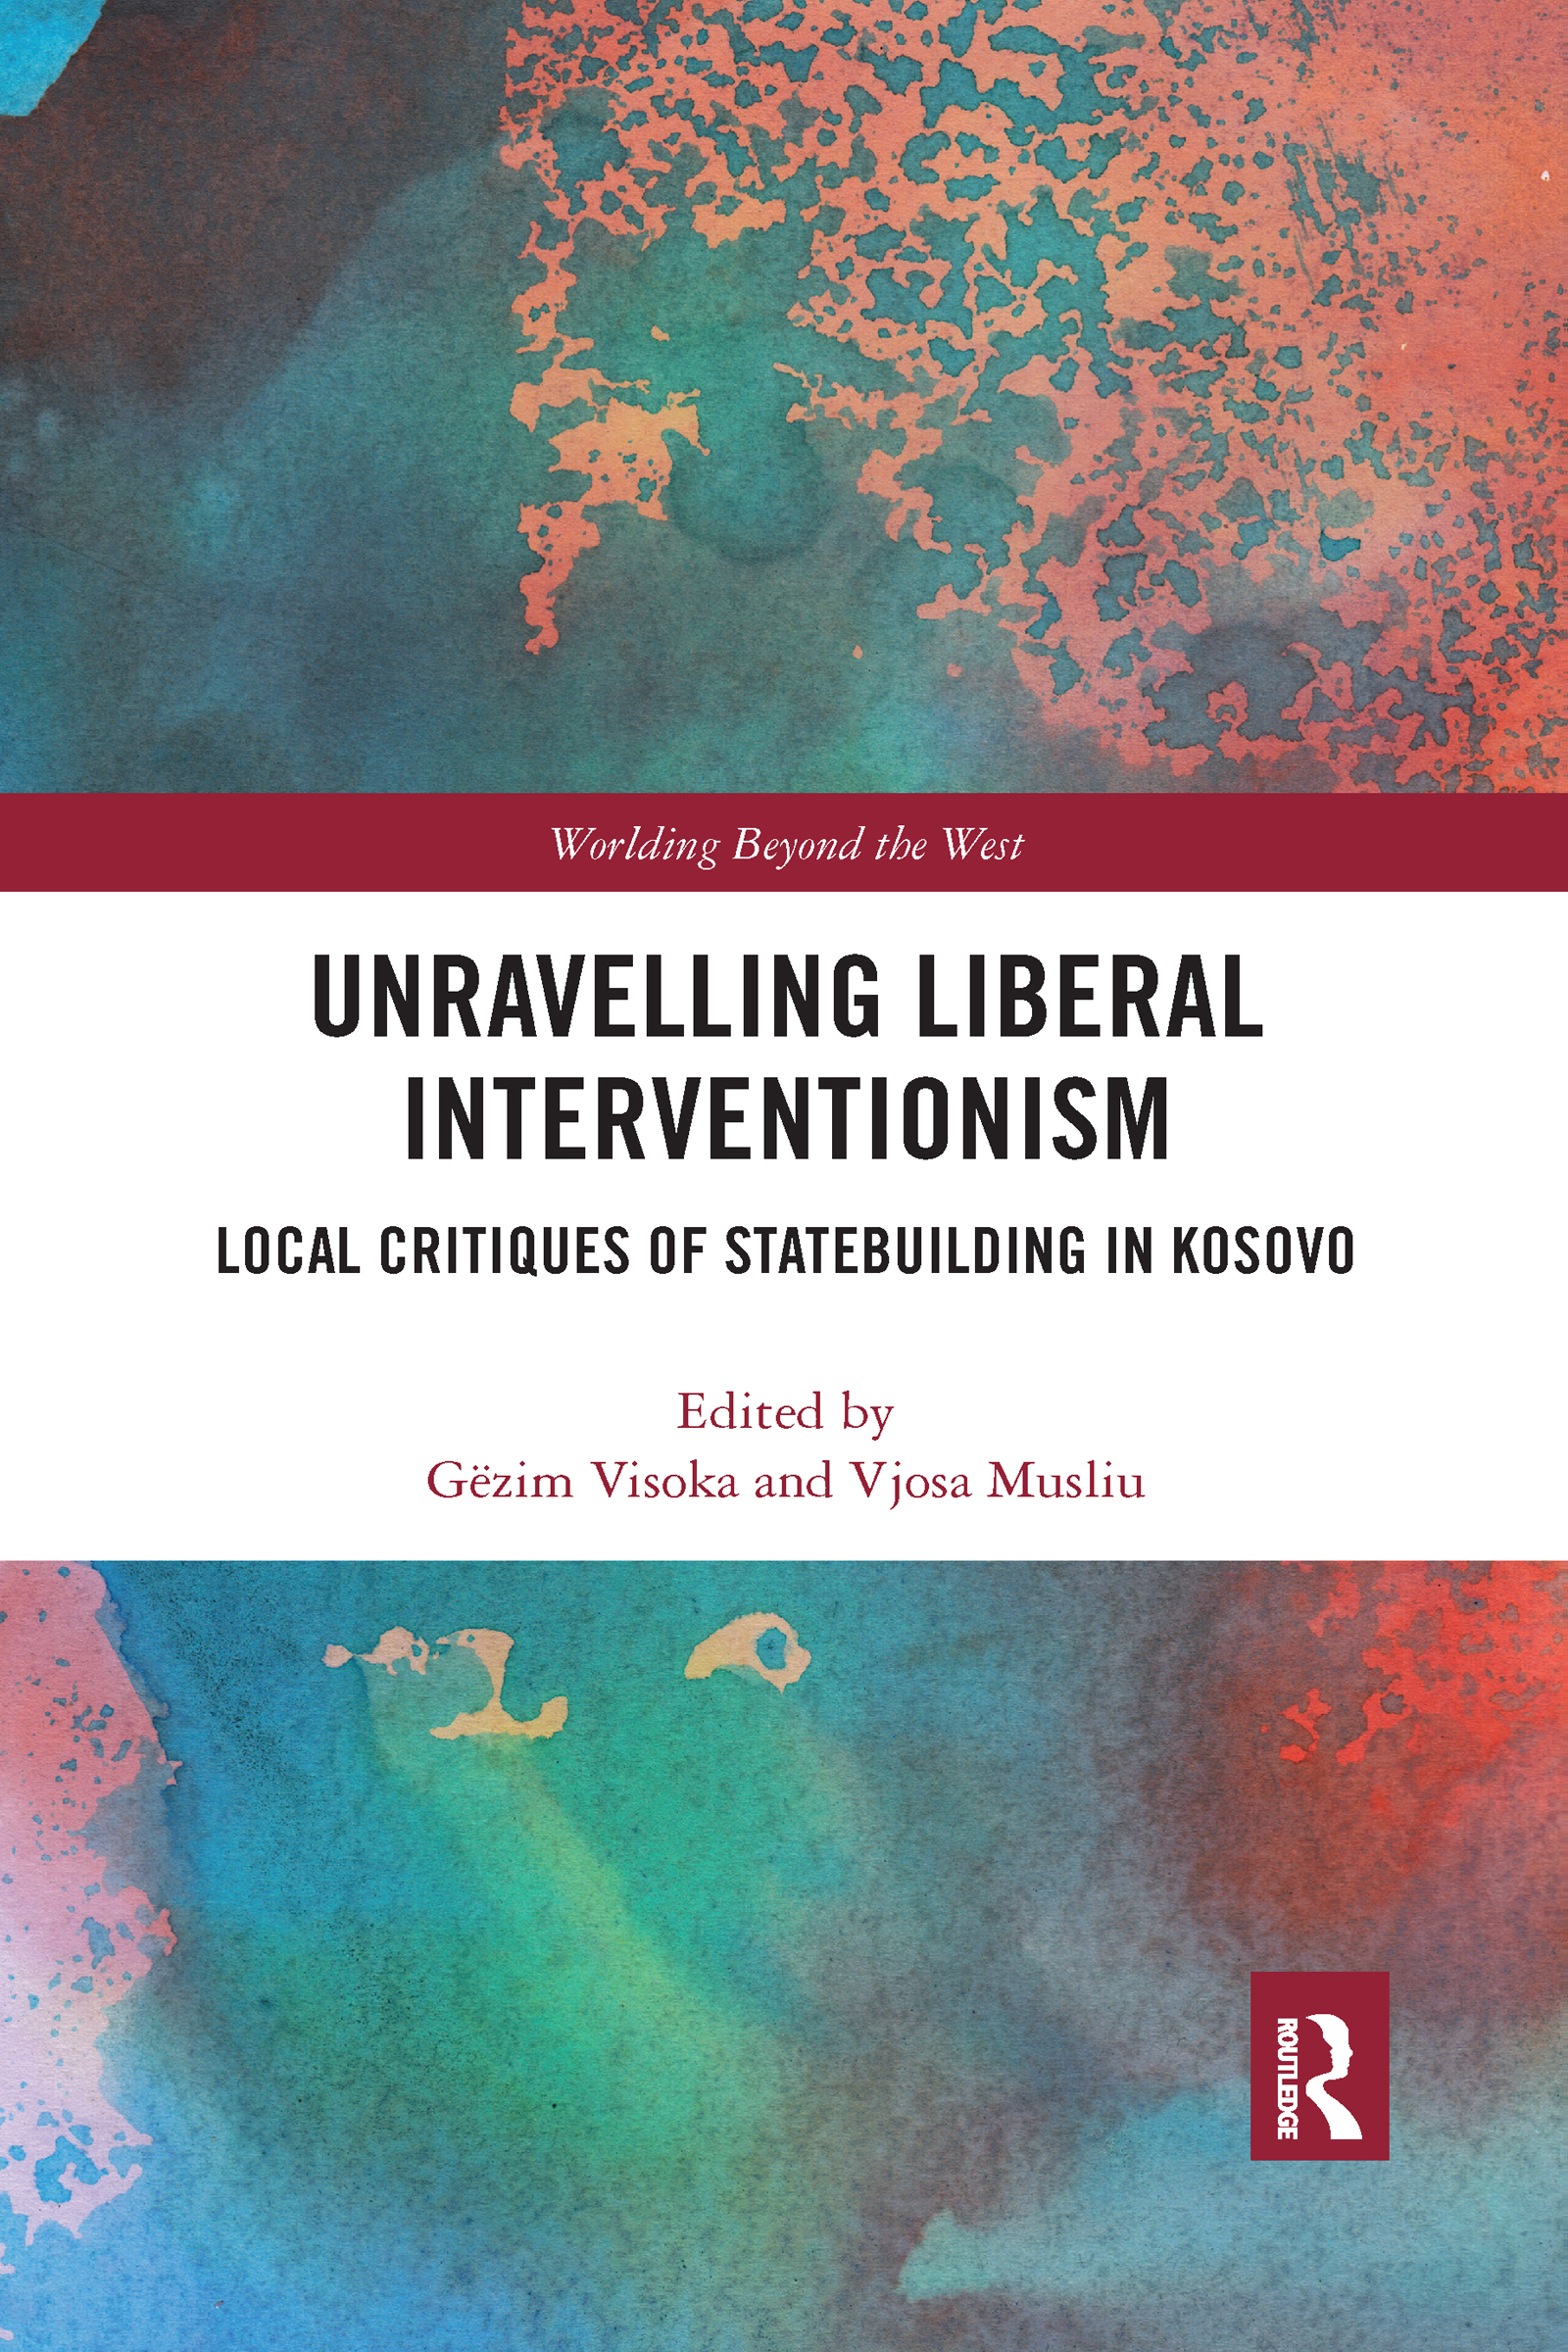 Unravelling Liberal Interventionism